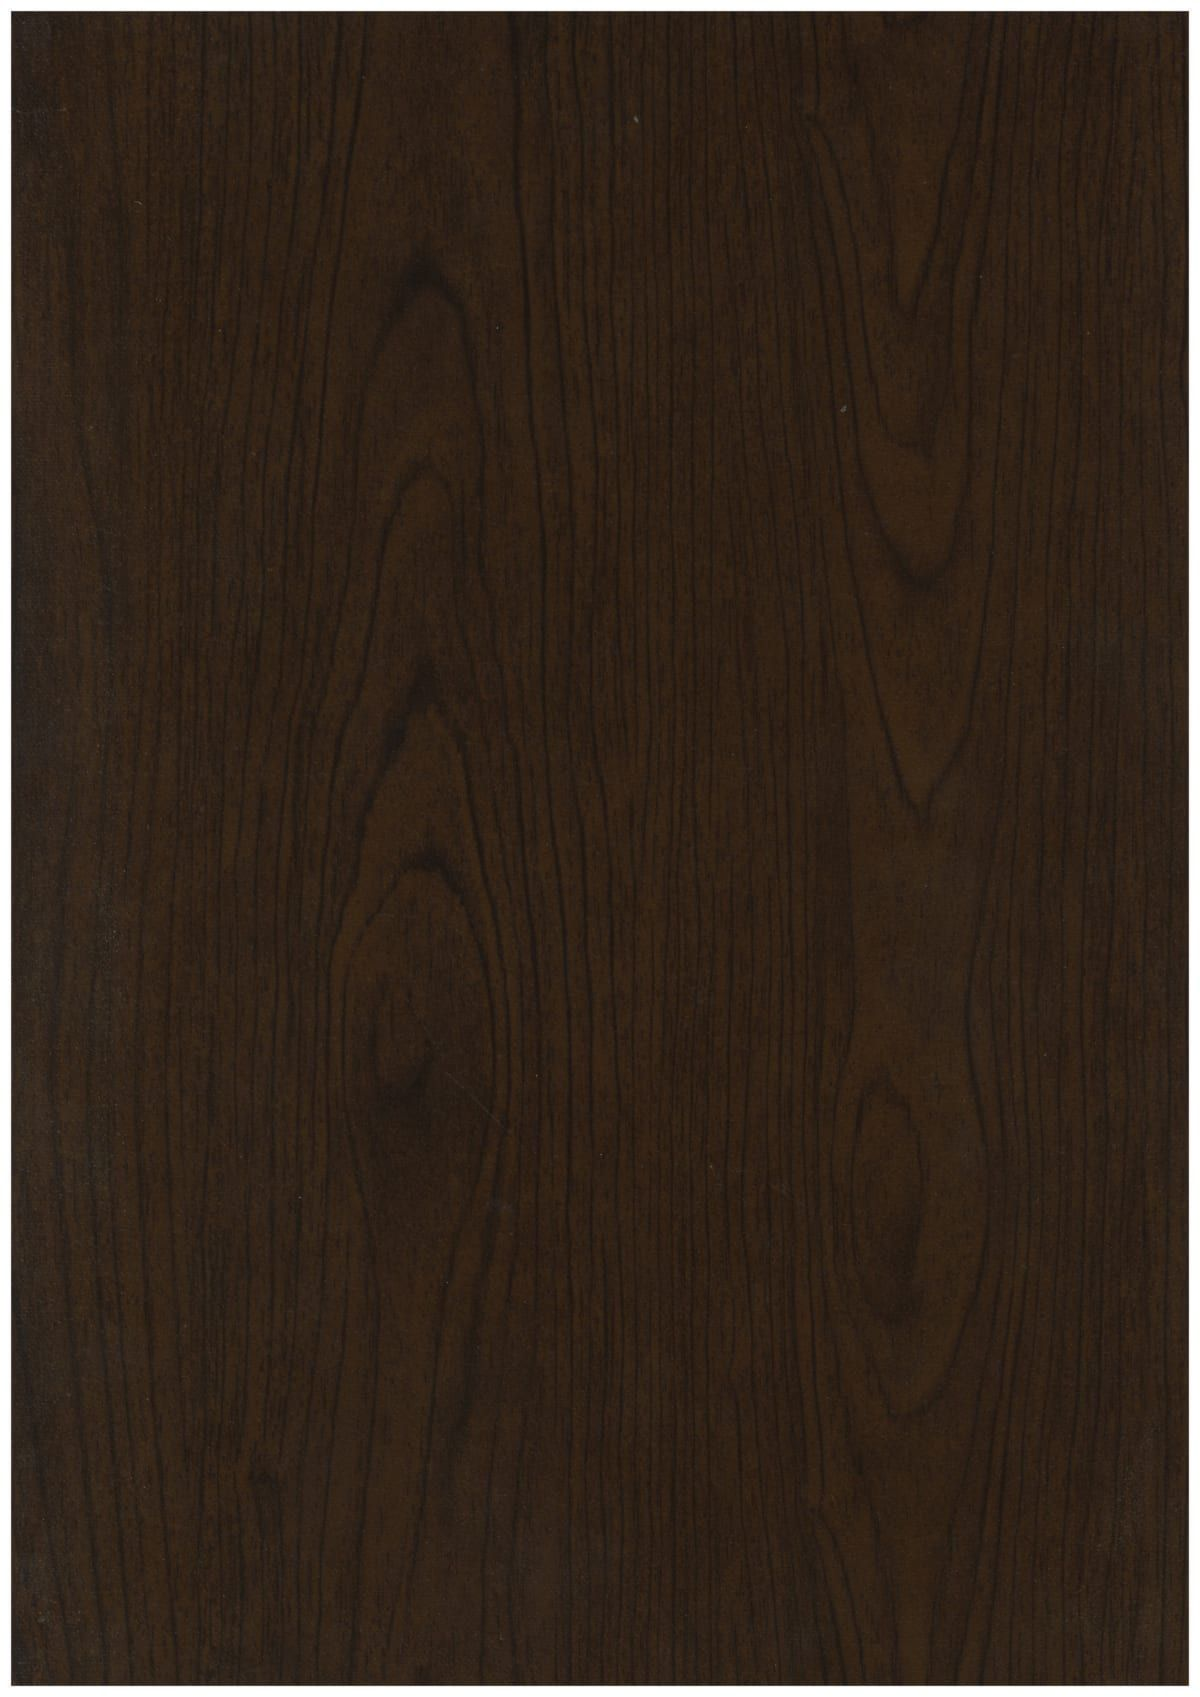 Black Walnut Dark Brown Base Woodgrain Colors For Aluminum Knotwood Knotwood Com Knotwood Black Walnut Wood Wood For Sale Walnut Wood